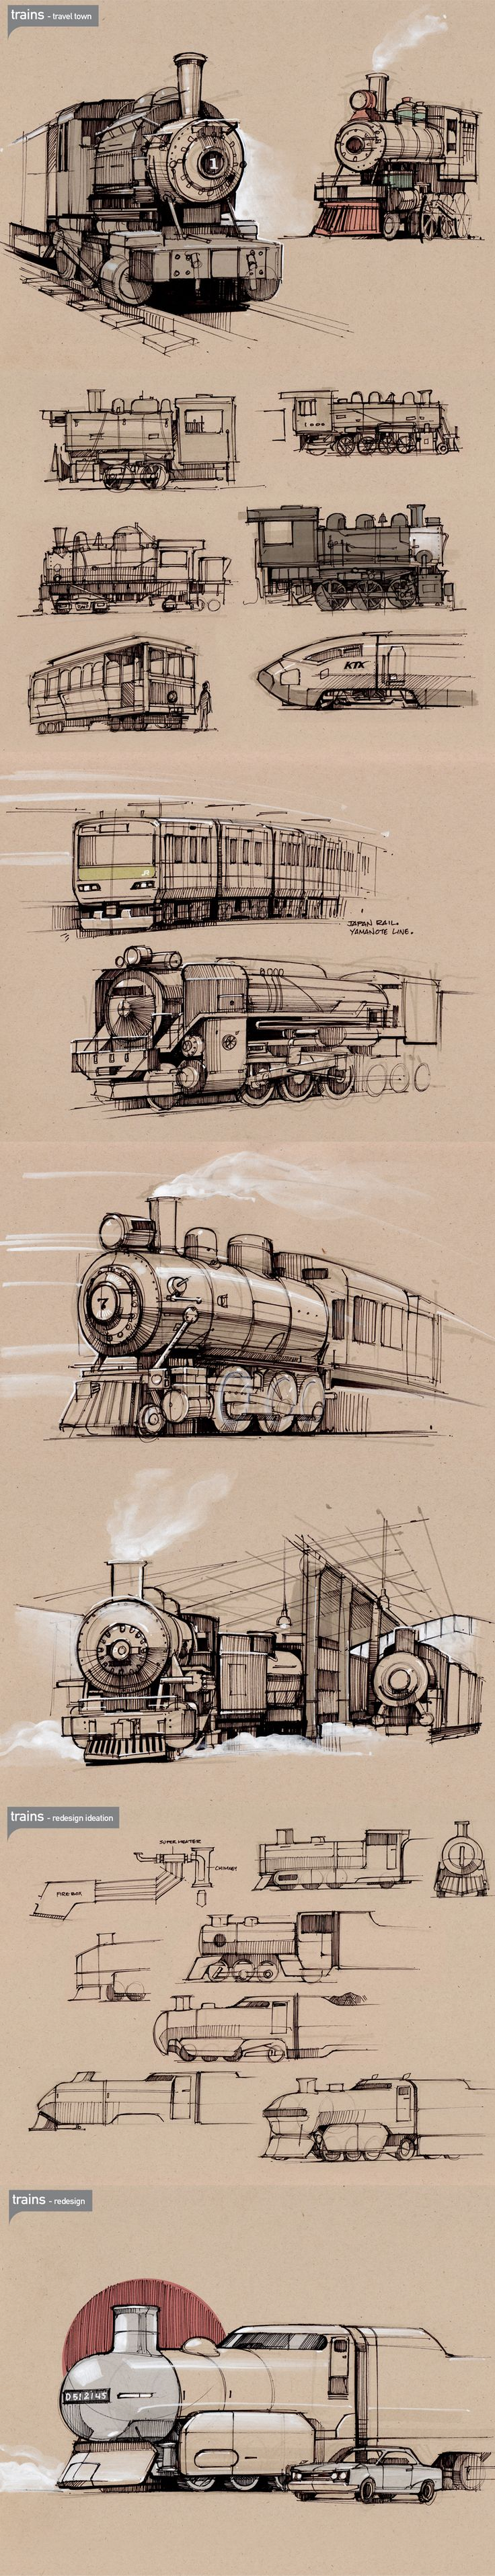 Summer 2011 Sketches 8 - trains — Minimally Minimal